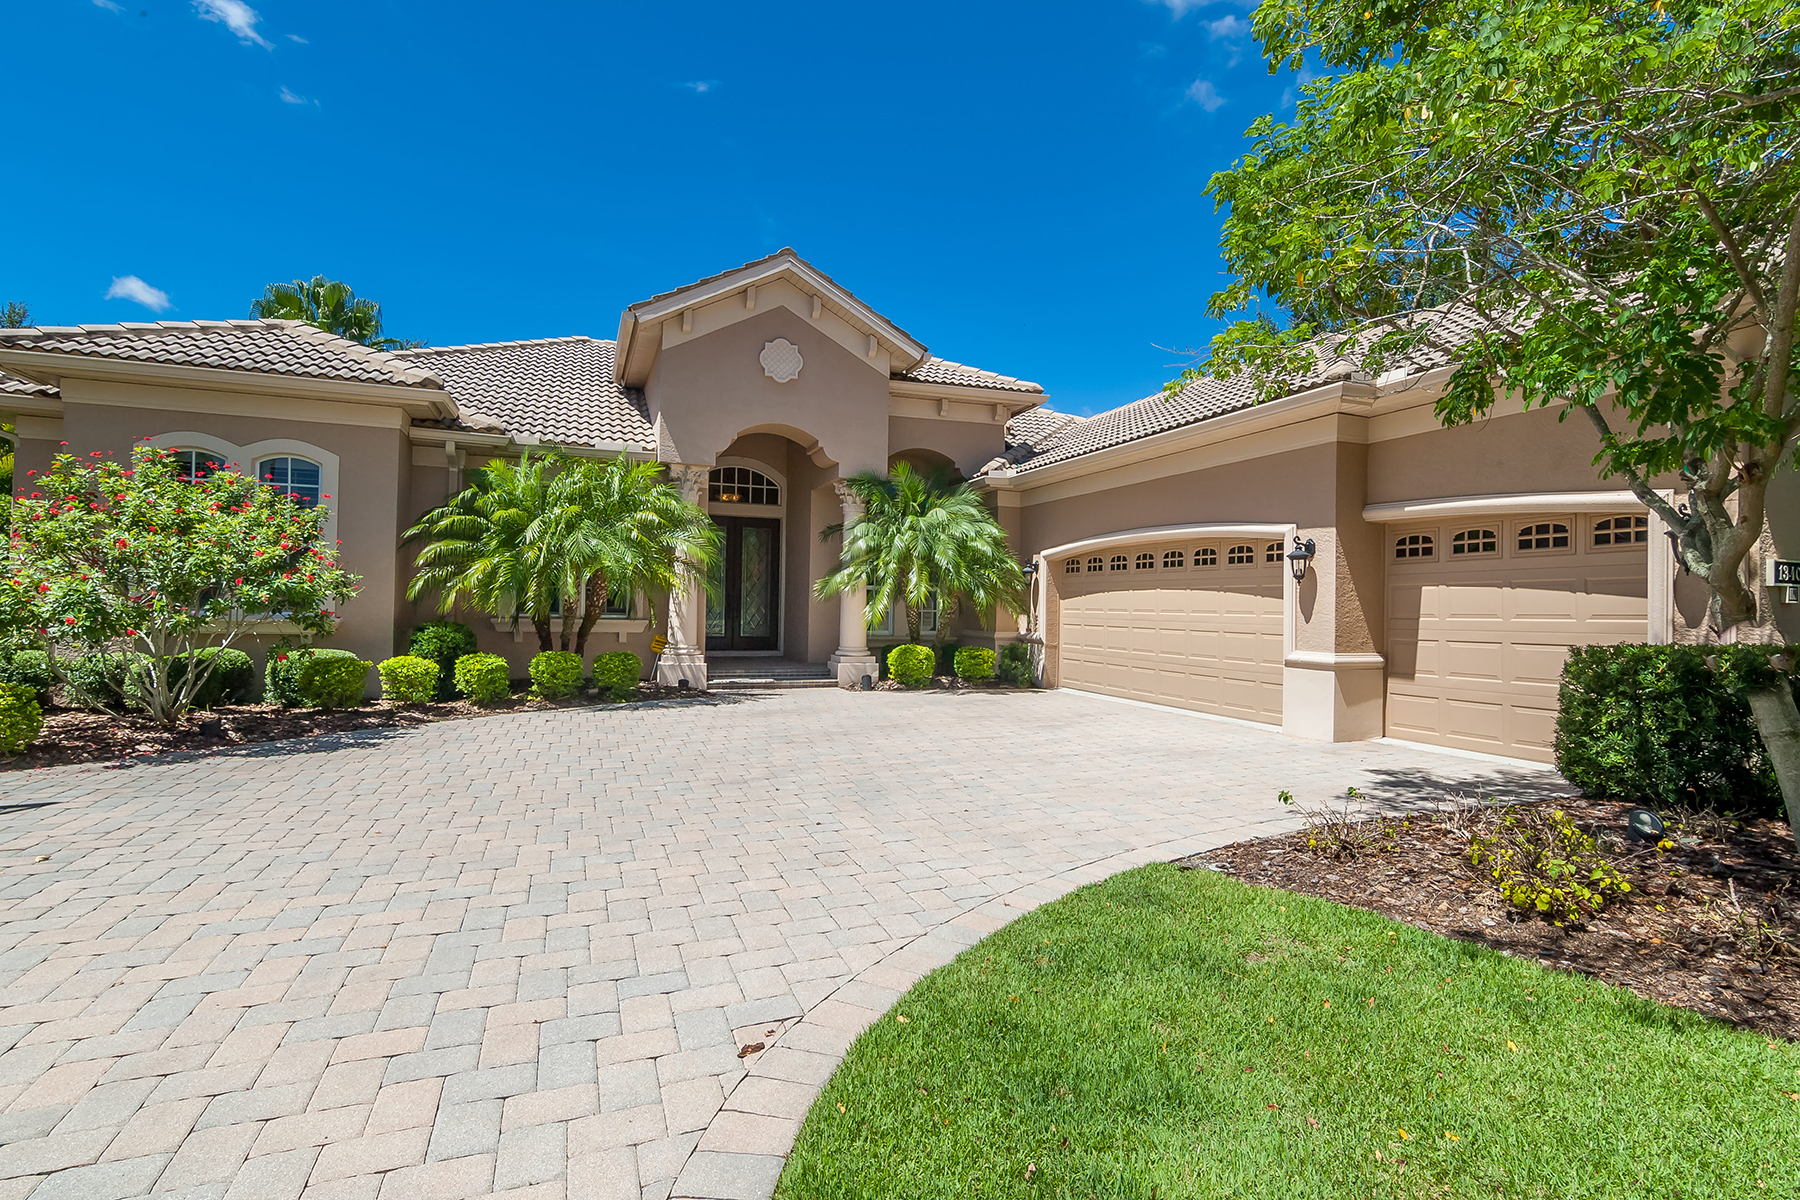 Single Family Home for Sale at LAKEWOOD RANCH COUNTRY CLUB 13404 Kildare Pl Lakewood Ranch, Florida, 34202 United States